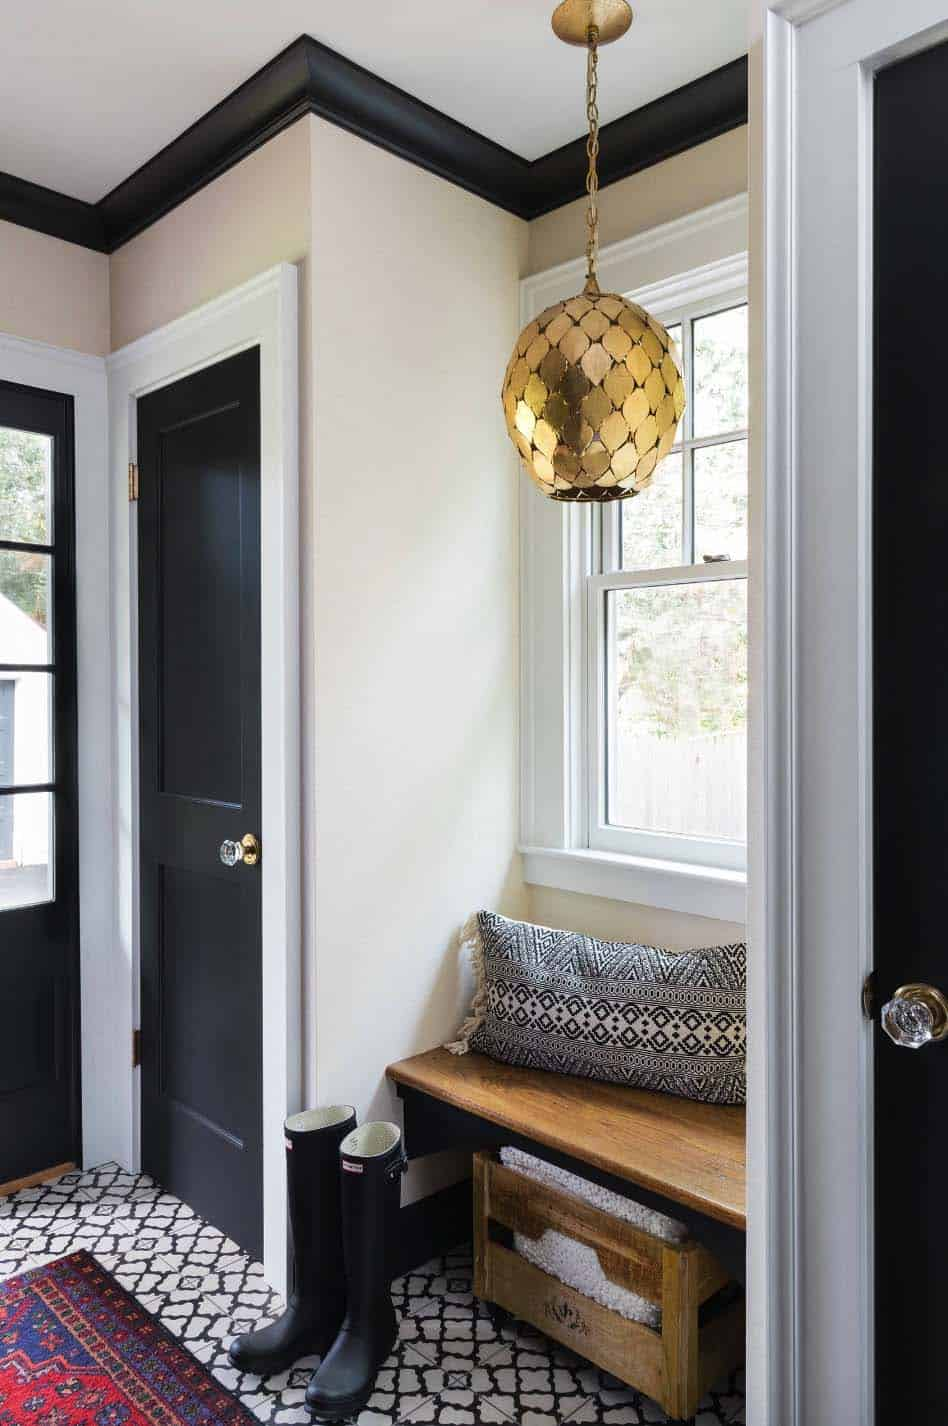 1568121741 963 25 inspiring mudroom ideas for every home and style - 25 Inspiring Mudroom Ideas For Every Home And Style